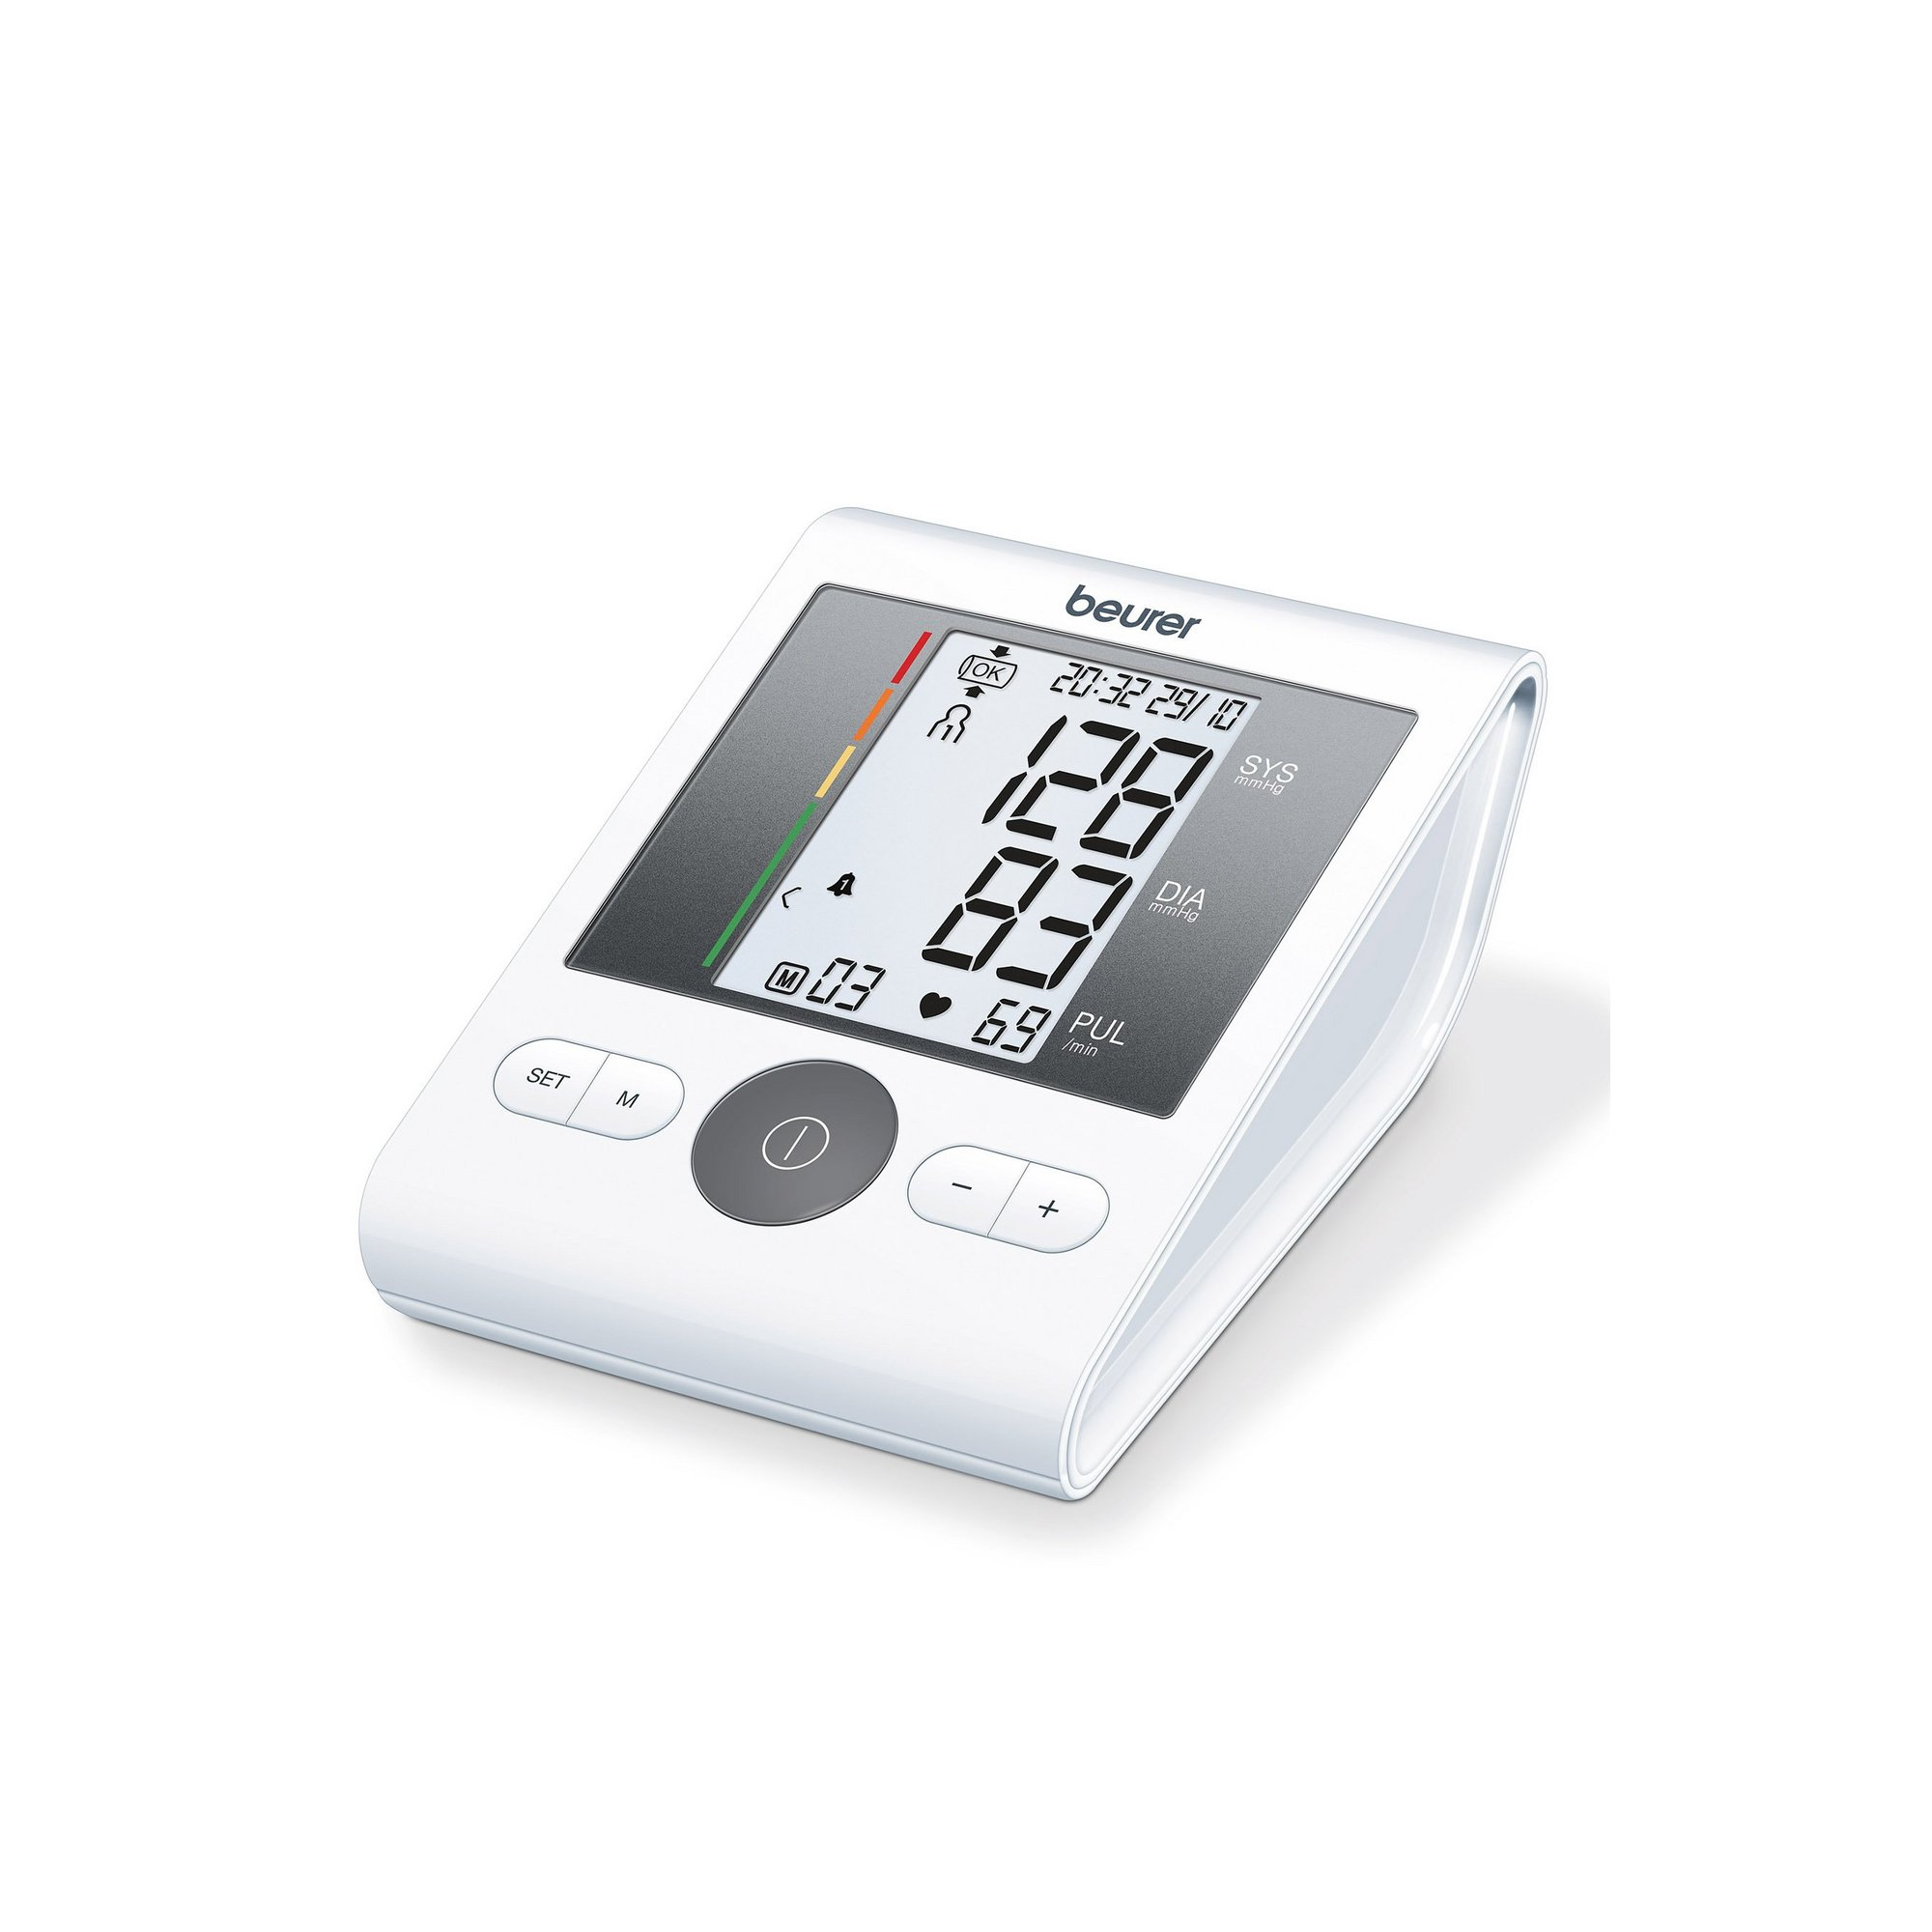 Image of Beurer Compact Upper Arm Blood Pressure Monitor BM28